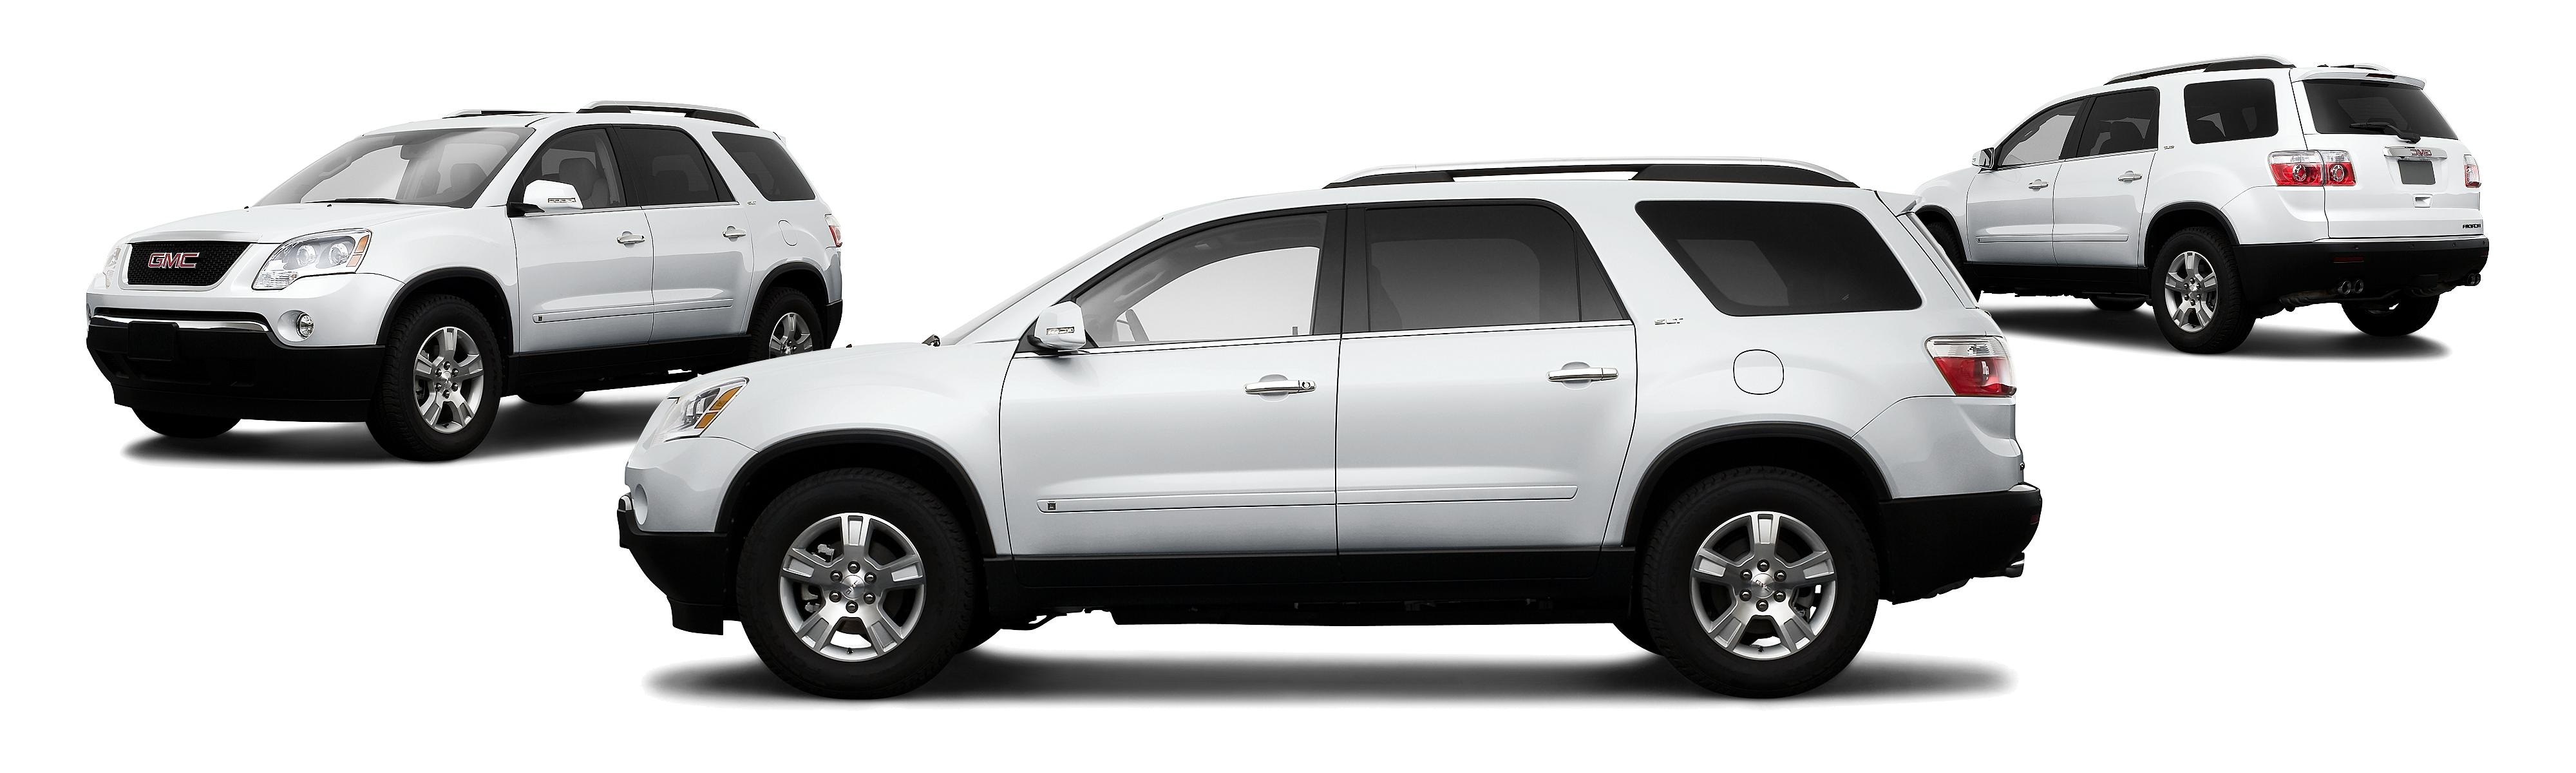 2009 GMC Acadia SLT 2 4dr SUV Research GrooveCar